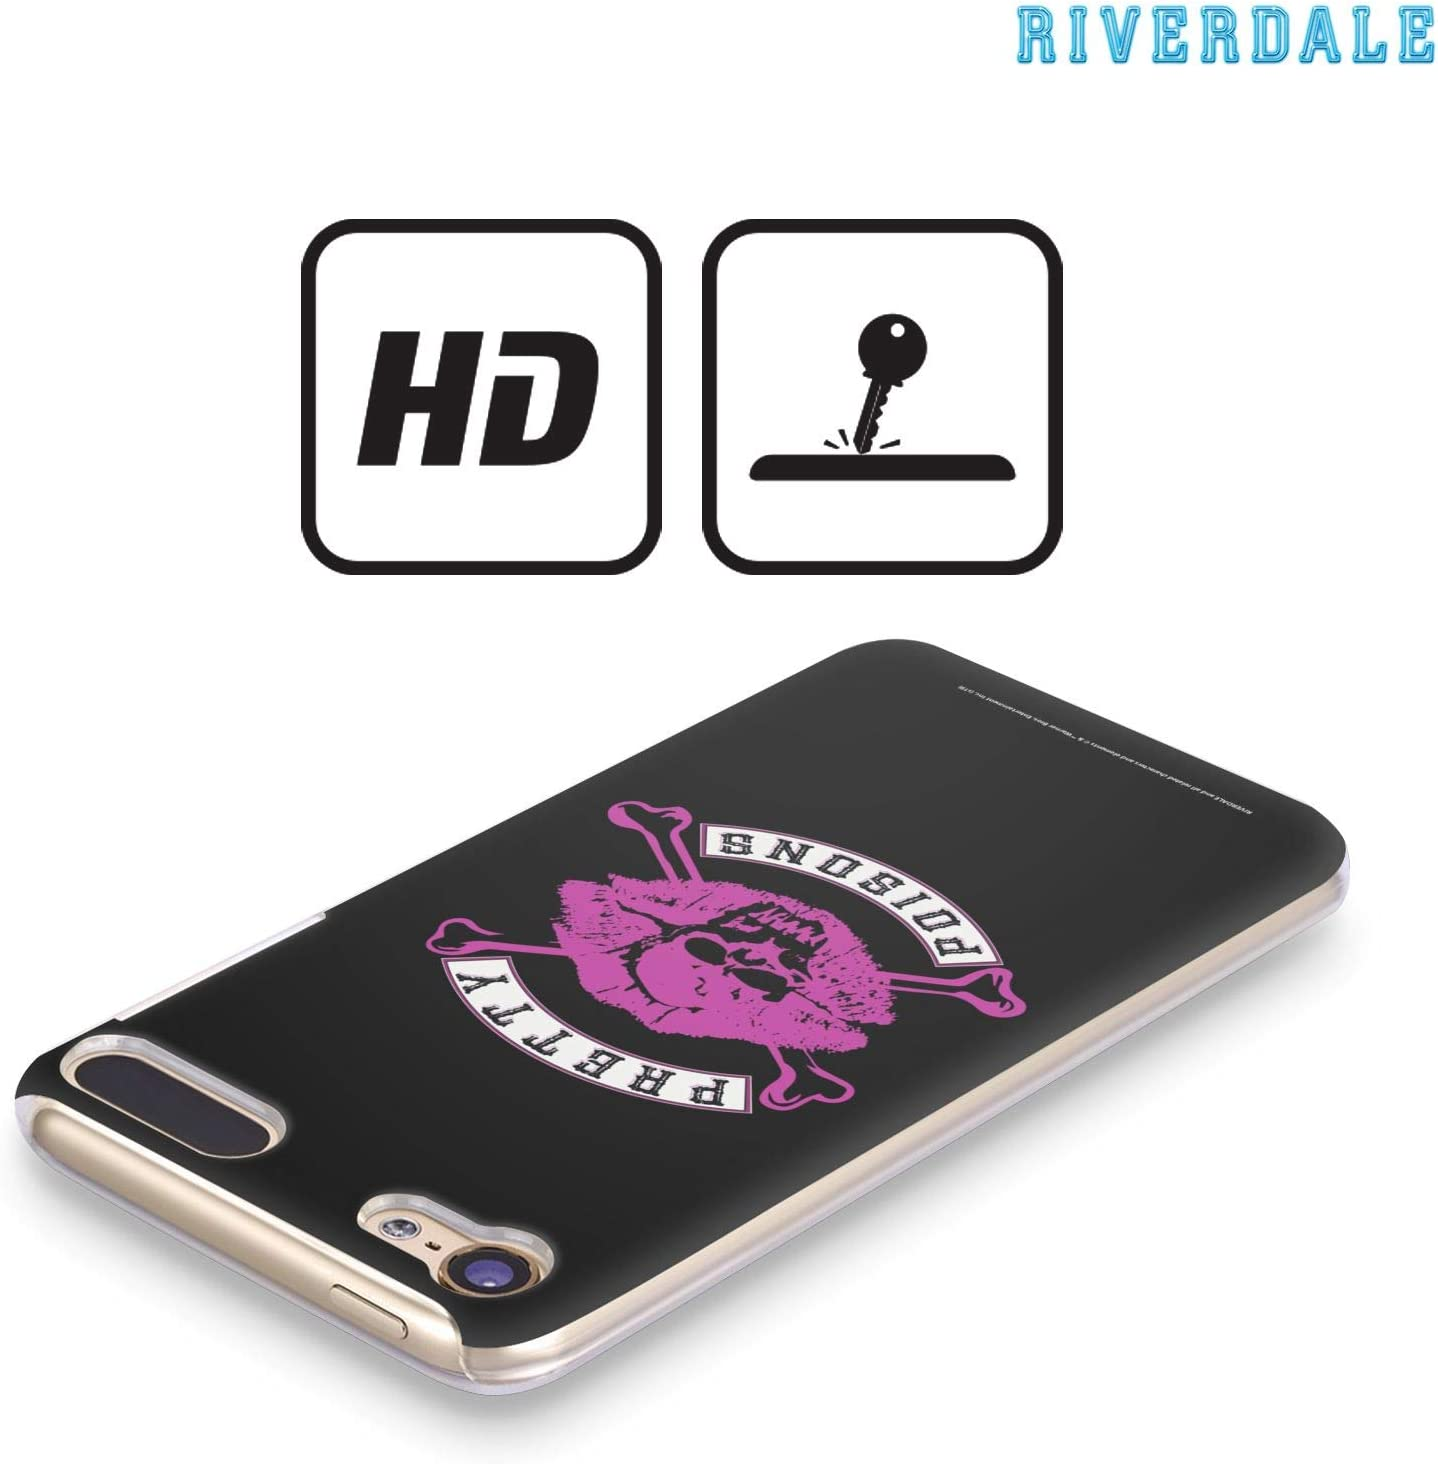 Official Riverdale South Side Serpents Graphic Art Hard Back Case Compatible for iPod Touch 5G 5th Gen